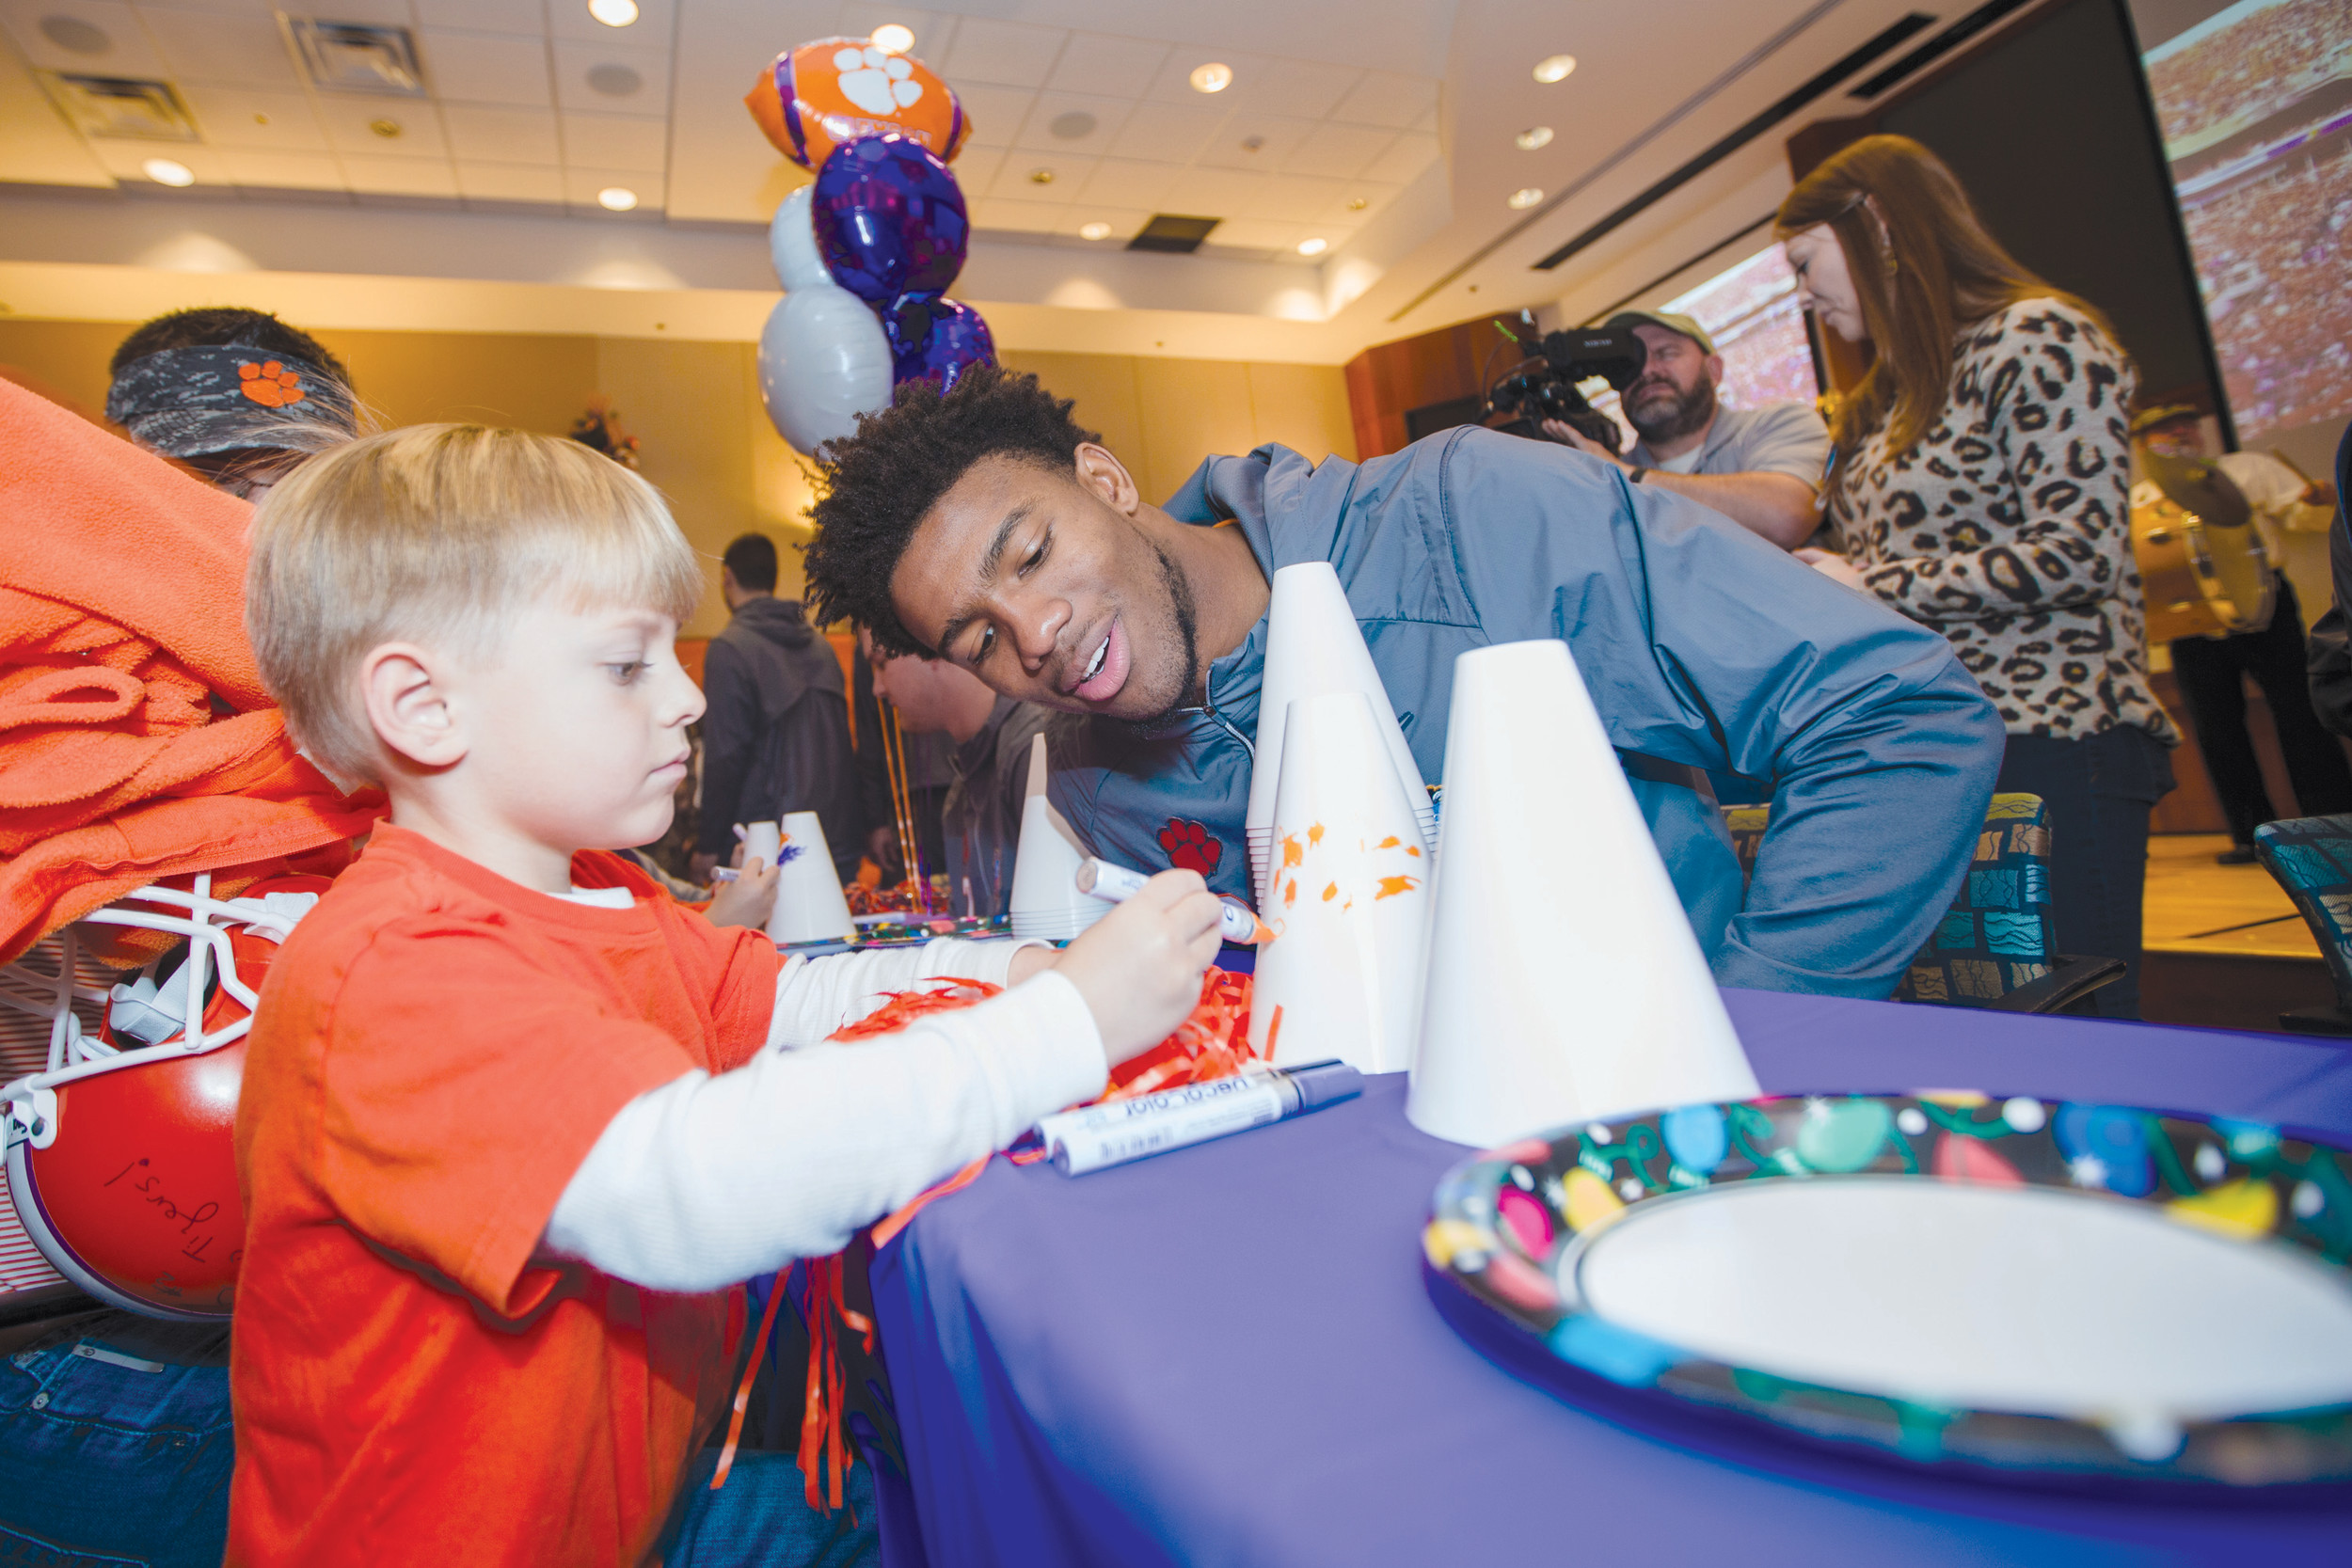 Clemson quarterback Kelly Bryant helps a patient at the hospital decorate a megaphone at the party Saturday.